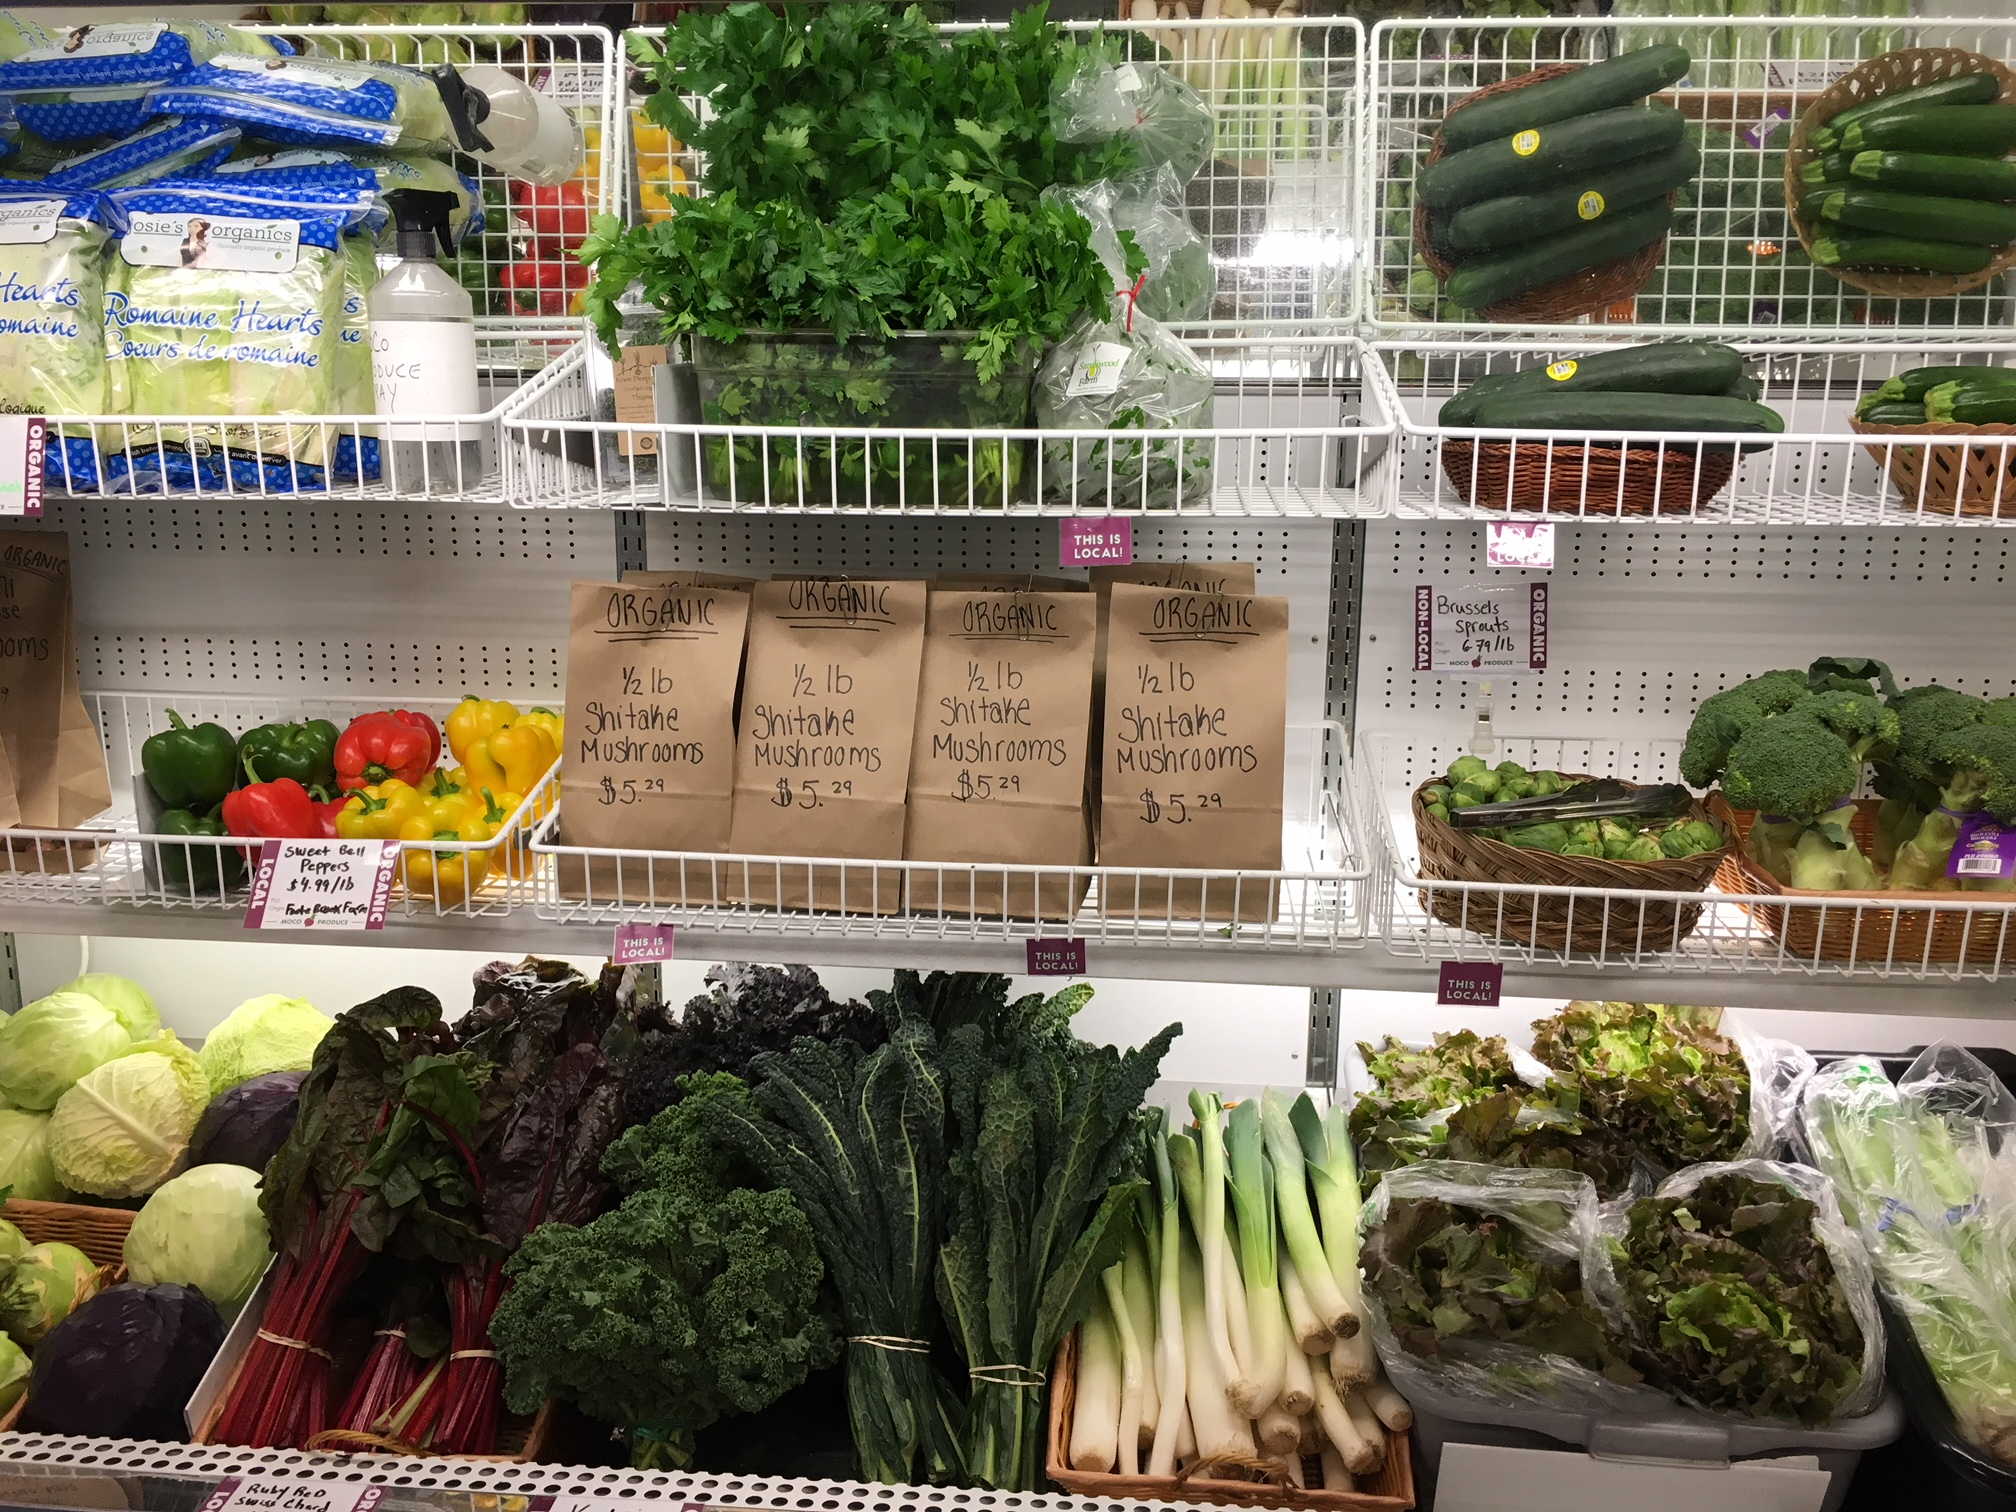 Produce - Our produce department is teeming with the freshest available vegetables and fruit around. Local farmers harvest and deliver to us, often on the same day. Vermont's freshest produce will always be at MoCo. Nutritionally dense, responsibly-grown food to keep your family healthy!